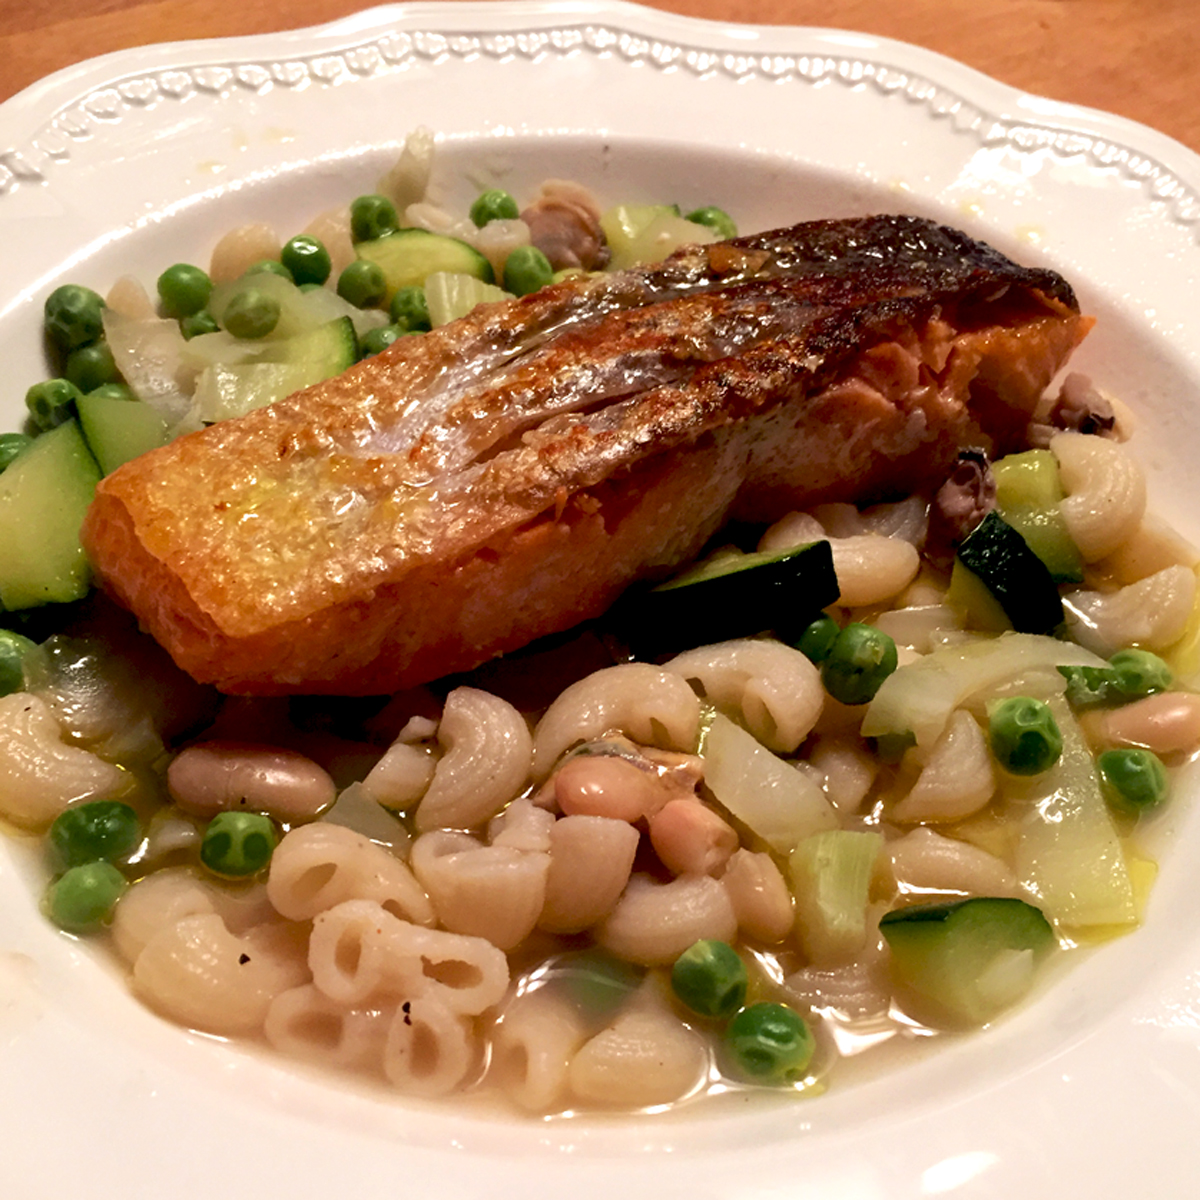 Our Finished Salmon With Shellfish Minestrone from Gordon Ramsay Masterclass